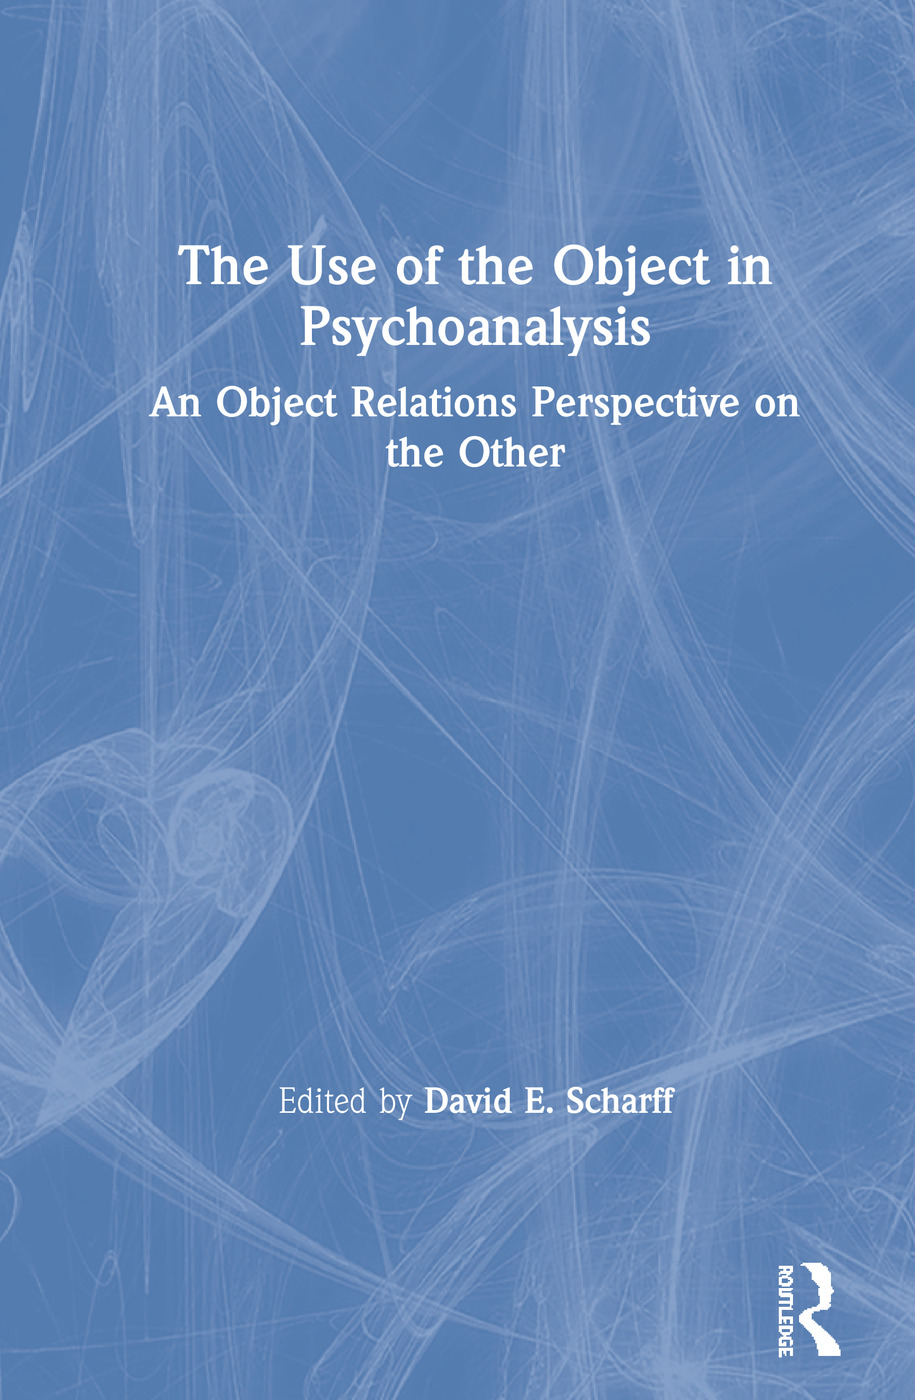 The Use of the Object in Psychoanalysis: An Object Relations Perspective on the Other book cover